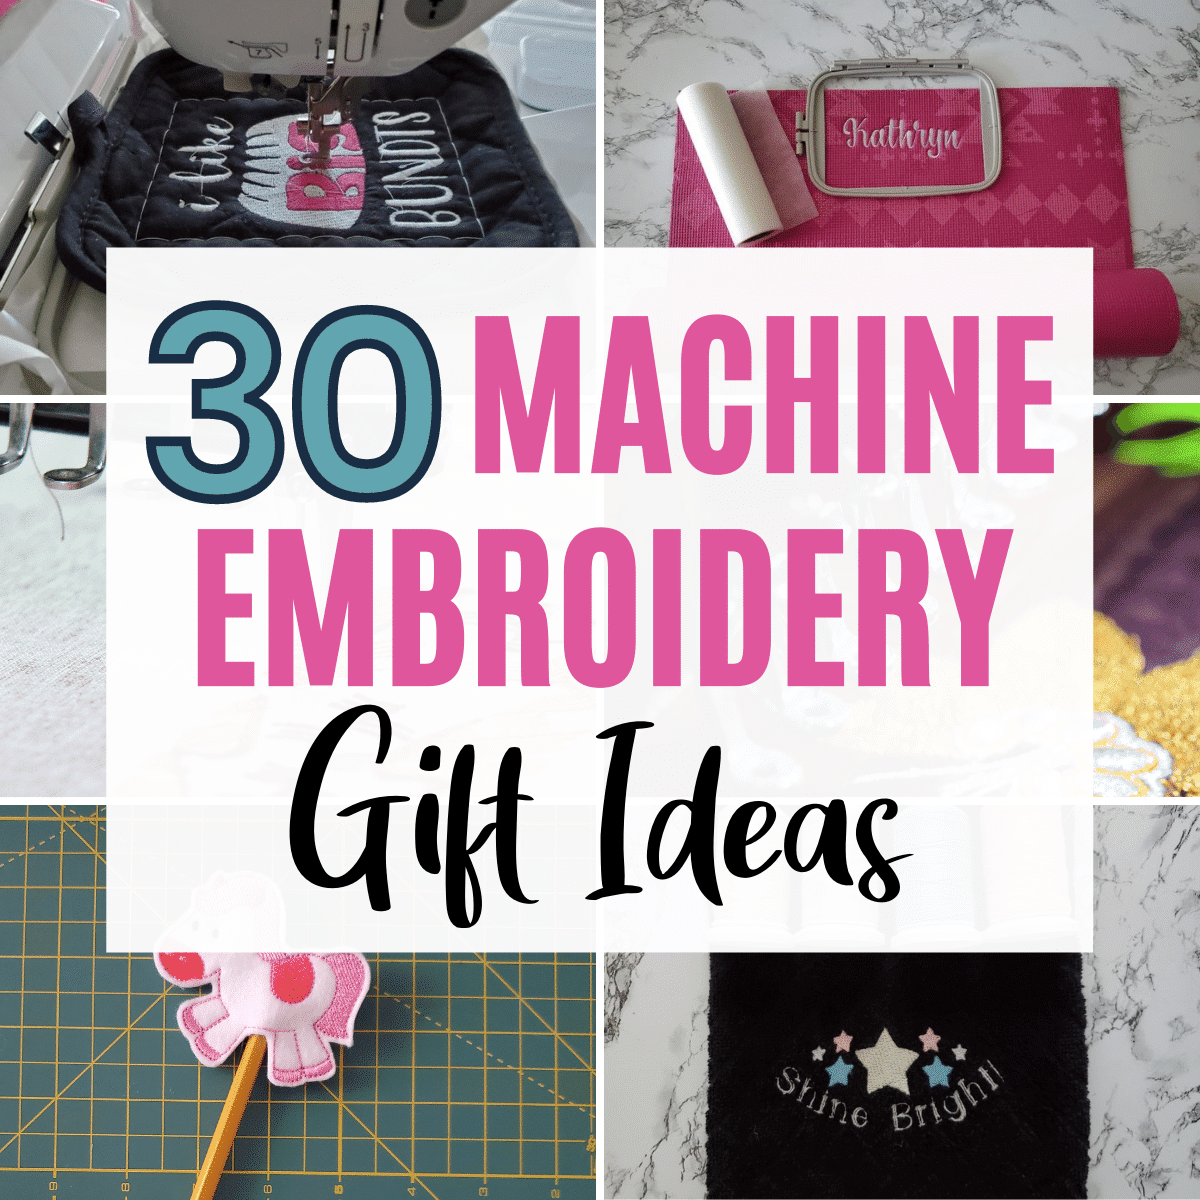 30+ Machine Embroidery Gift Ideas to Make & Give